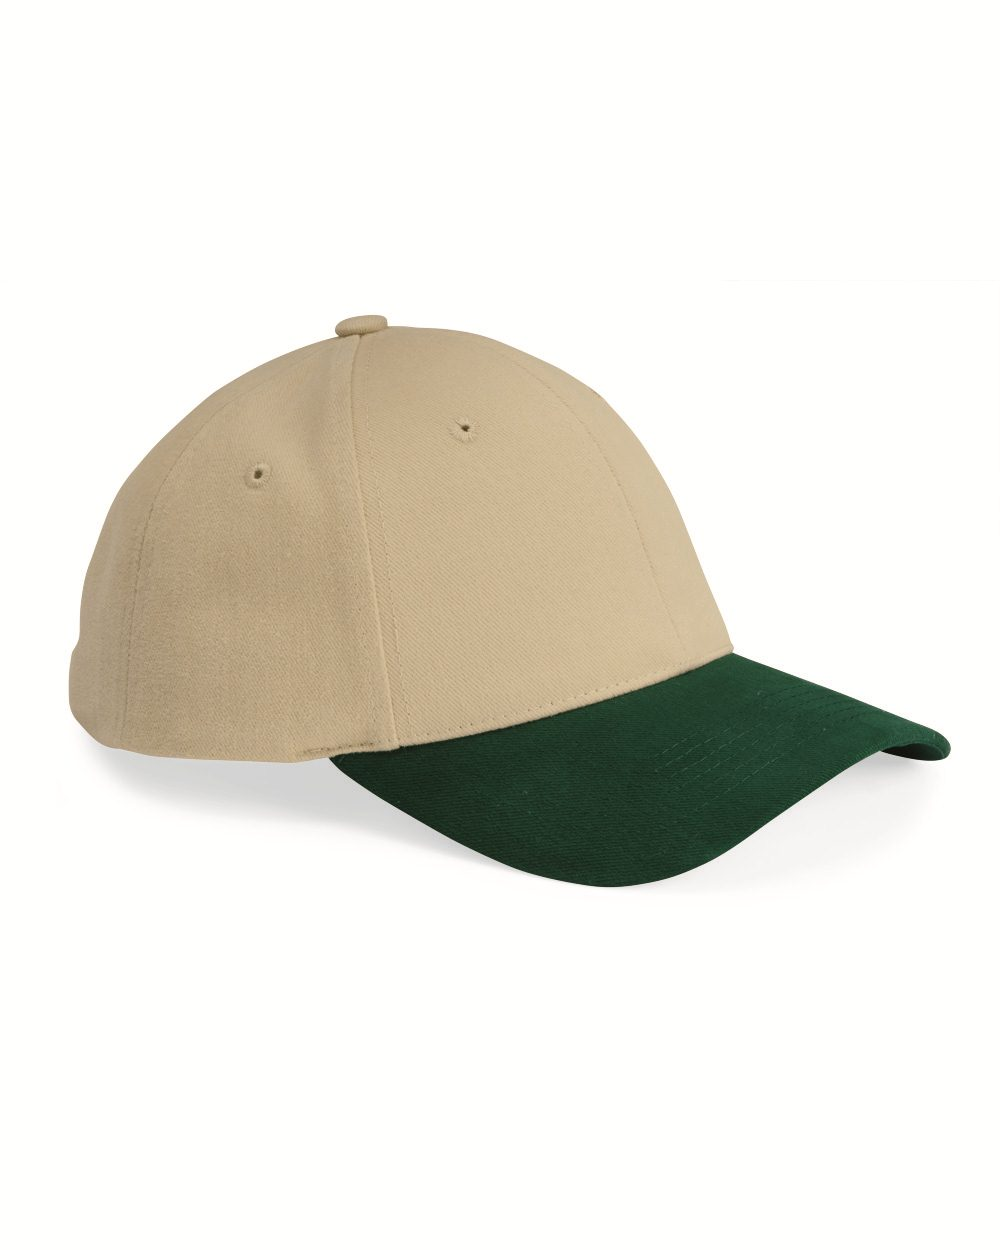 Sportsman Cap 9910 Structured Brushed Cotton Twill